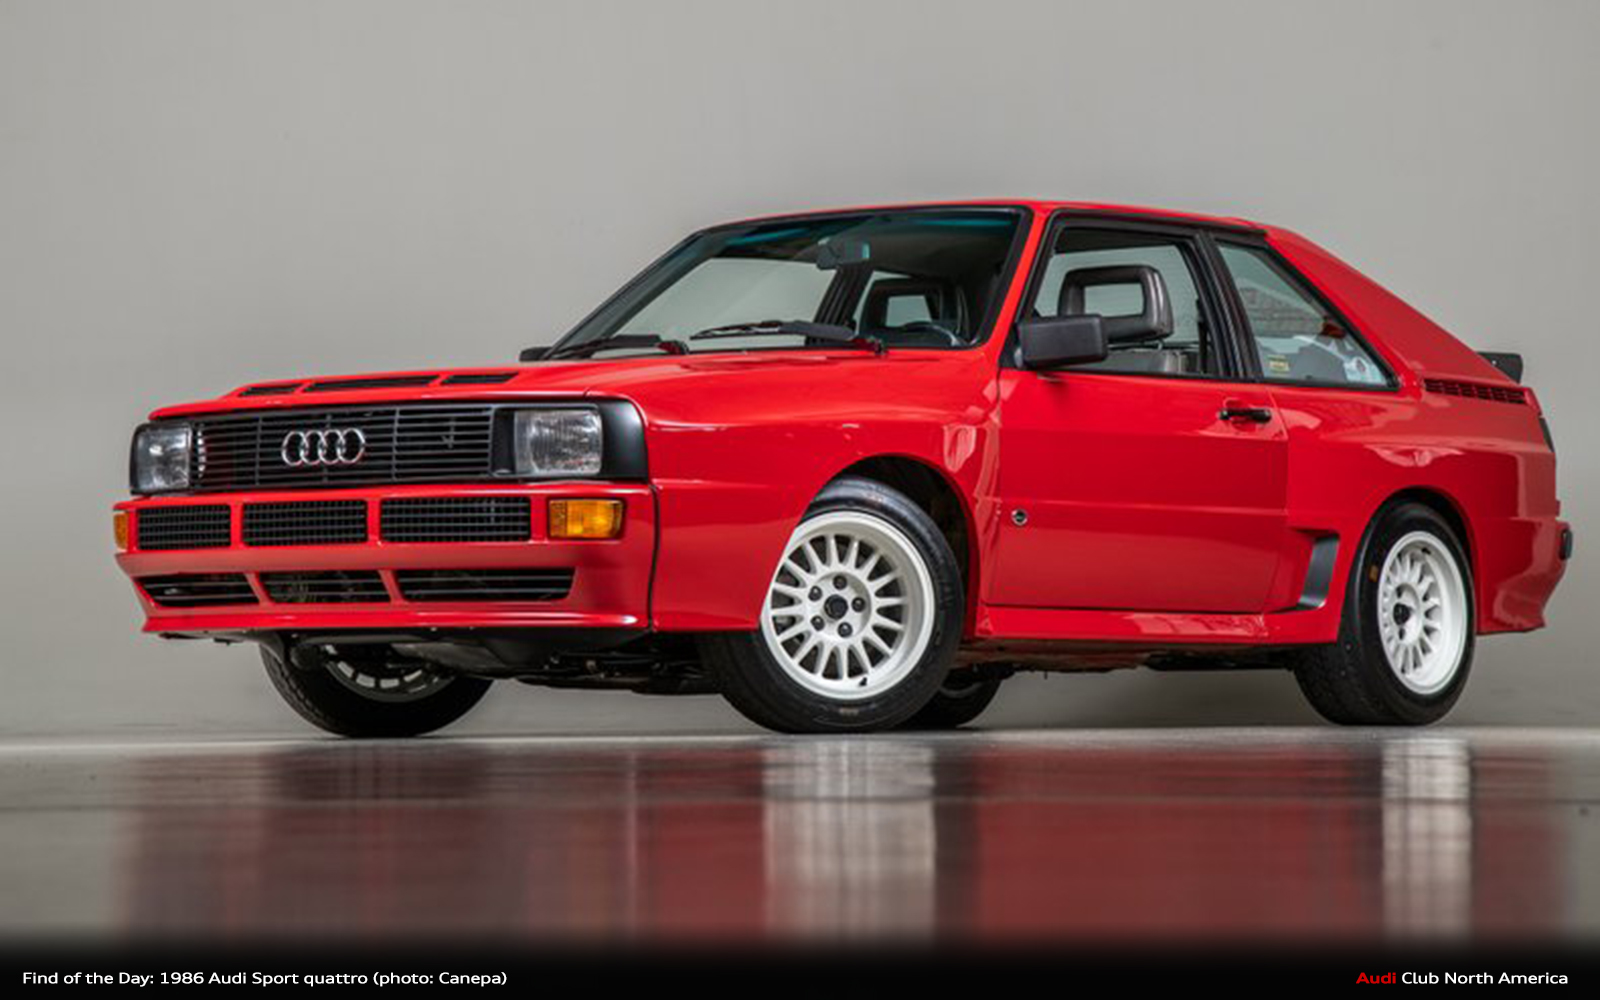 Find of the Day: 1986 Audi Sport quattro